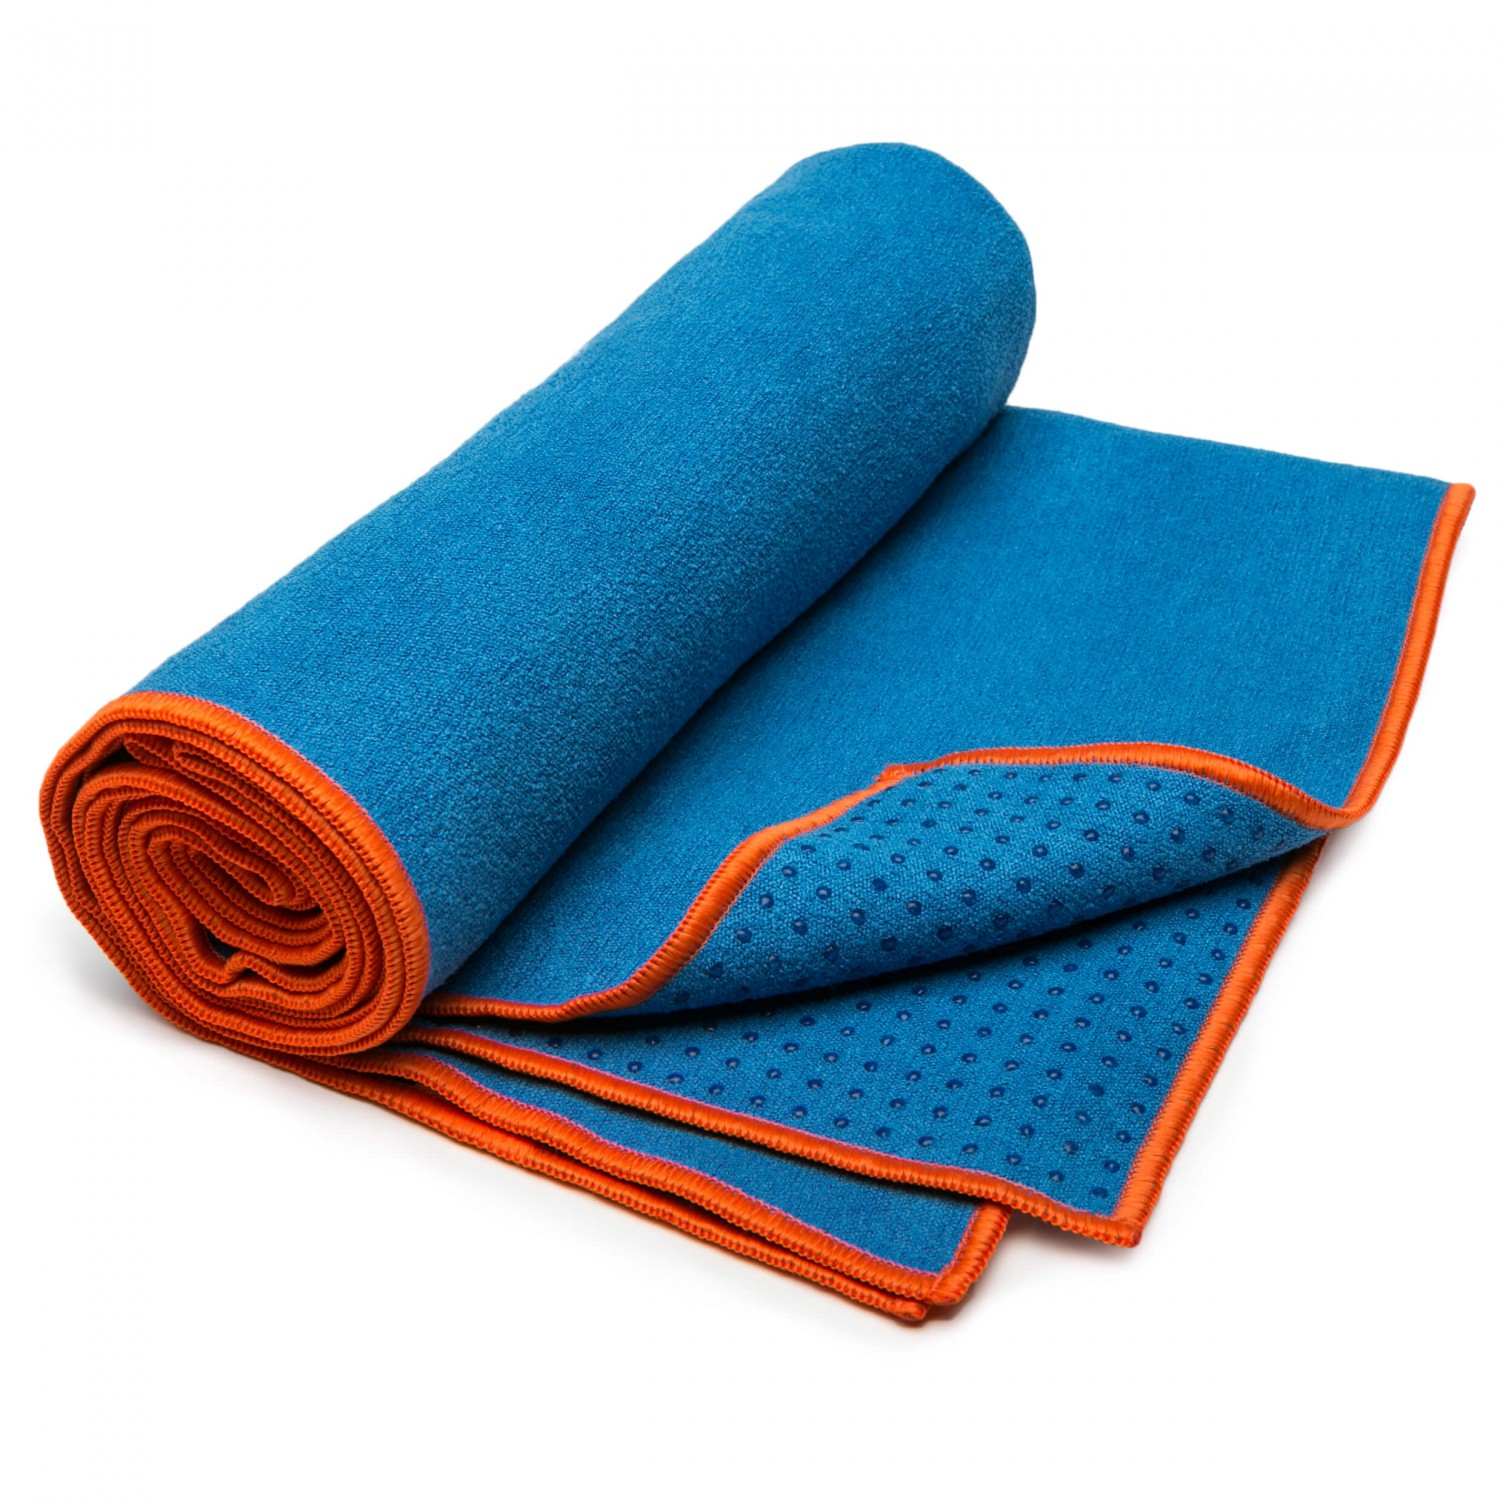 Yoga Towel Uk: Manduka Yogitoes Skidless Towels Chakra Collection